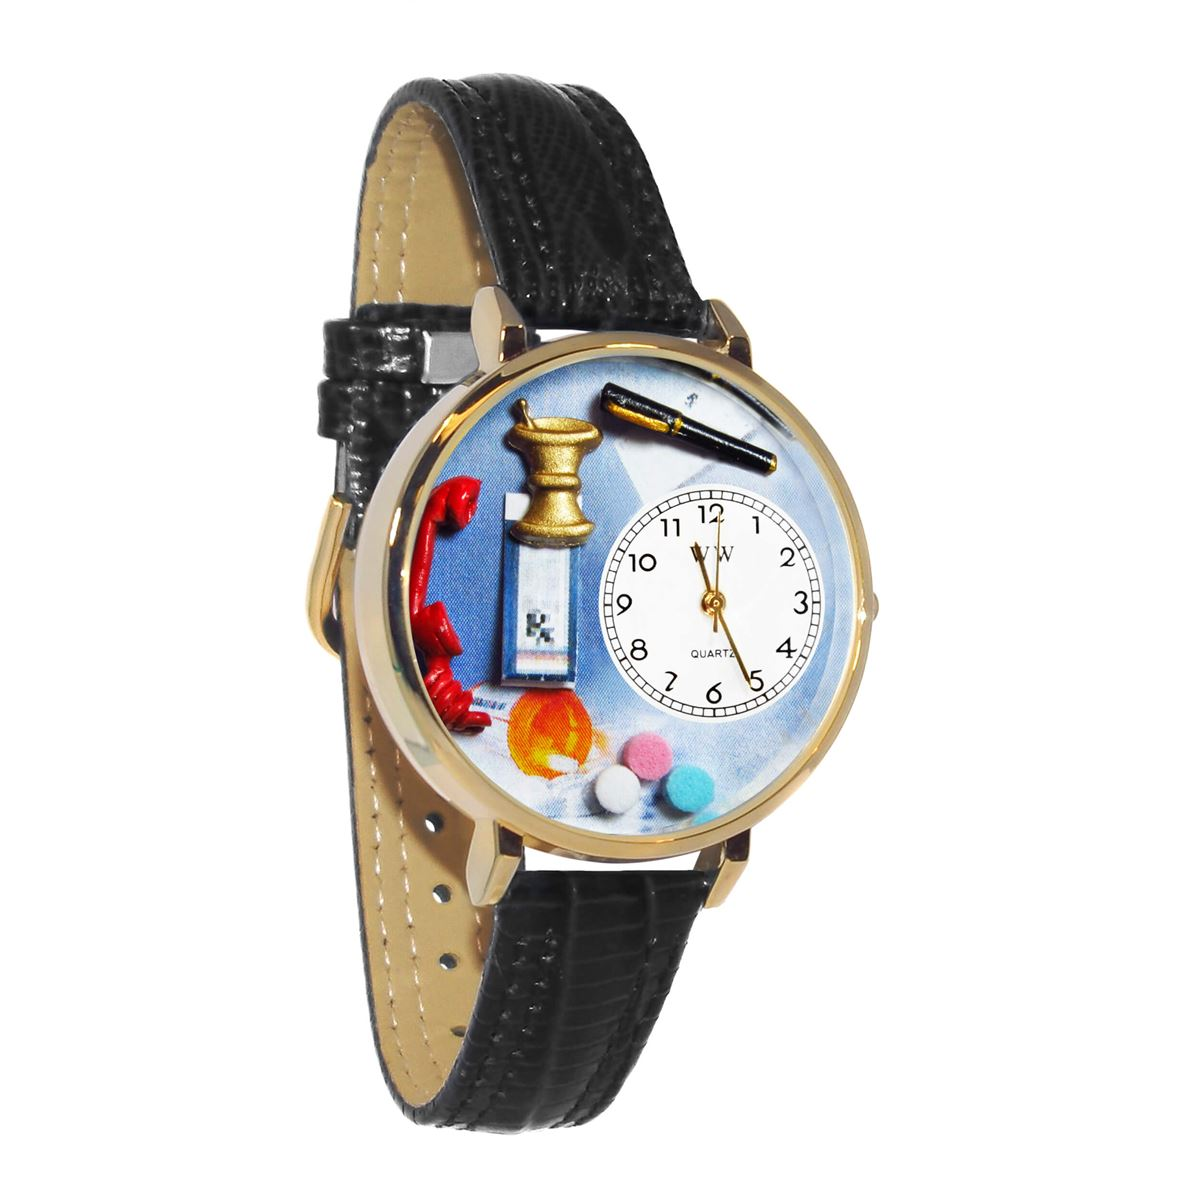 Pharmacist Watch in Gold (Large)